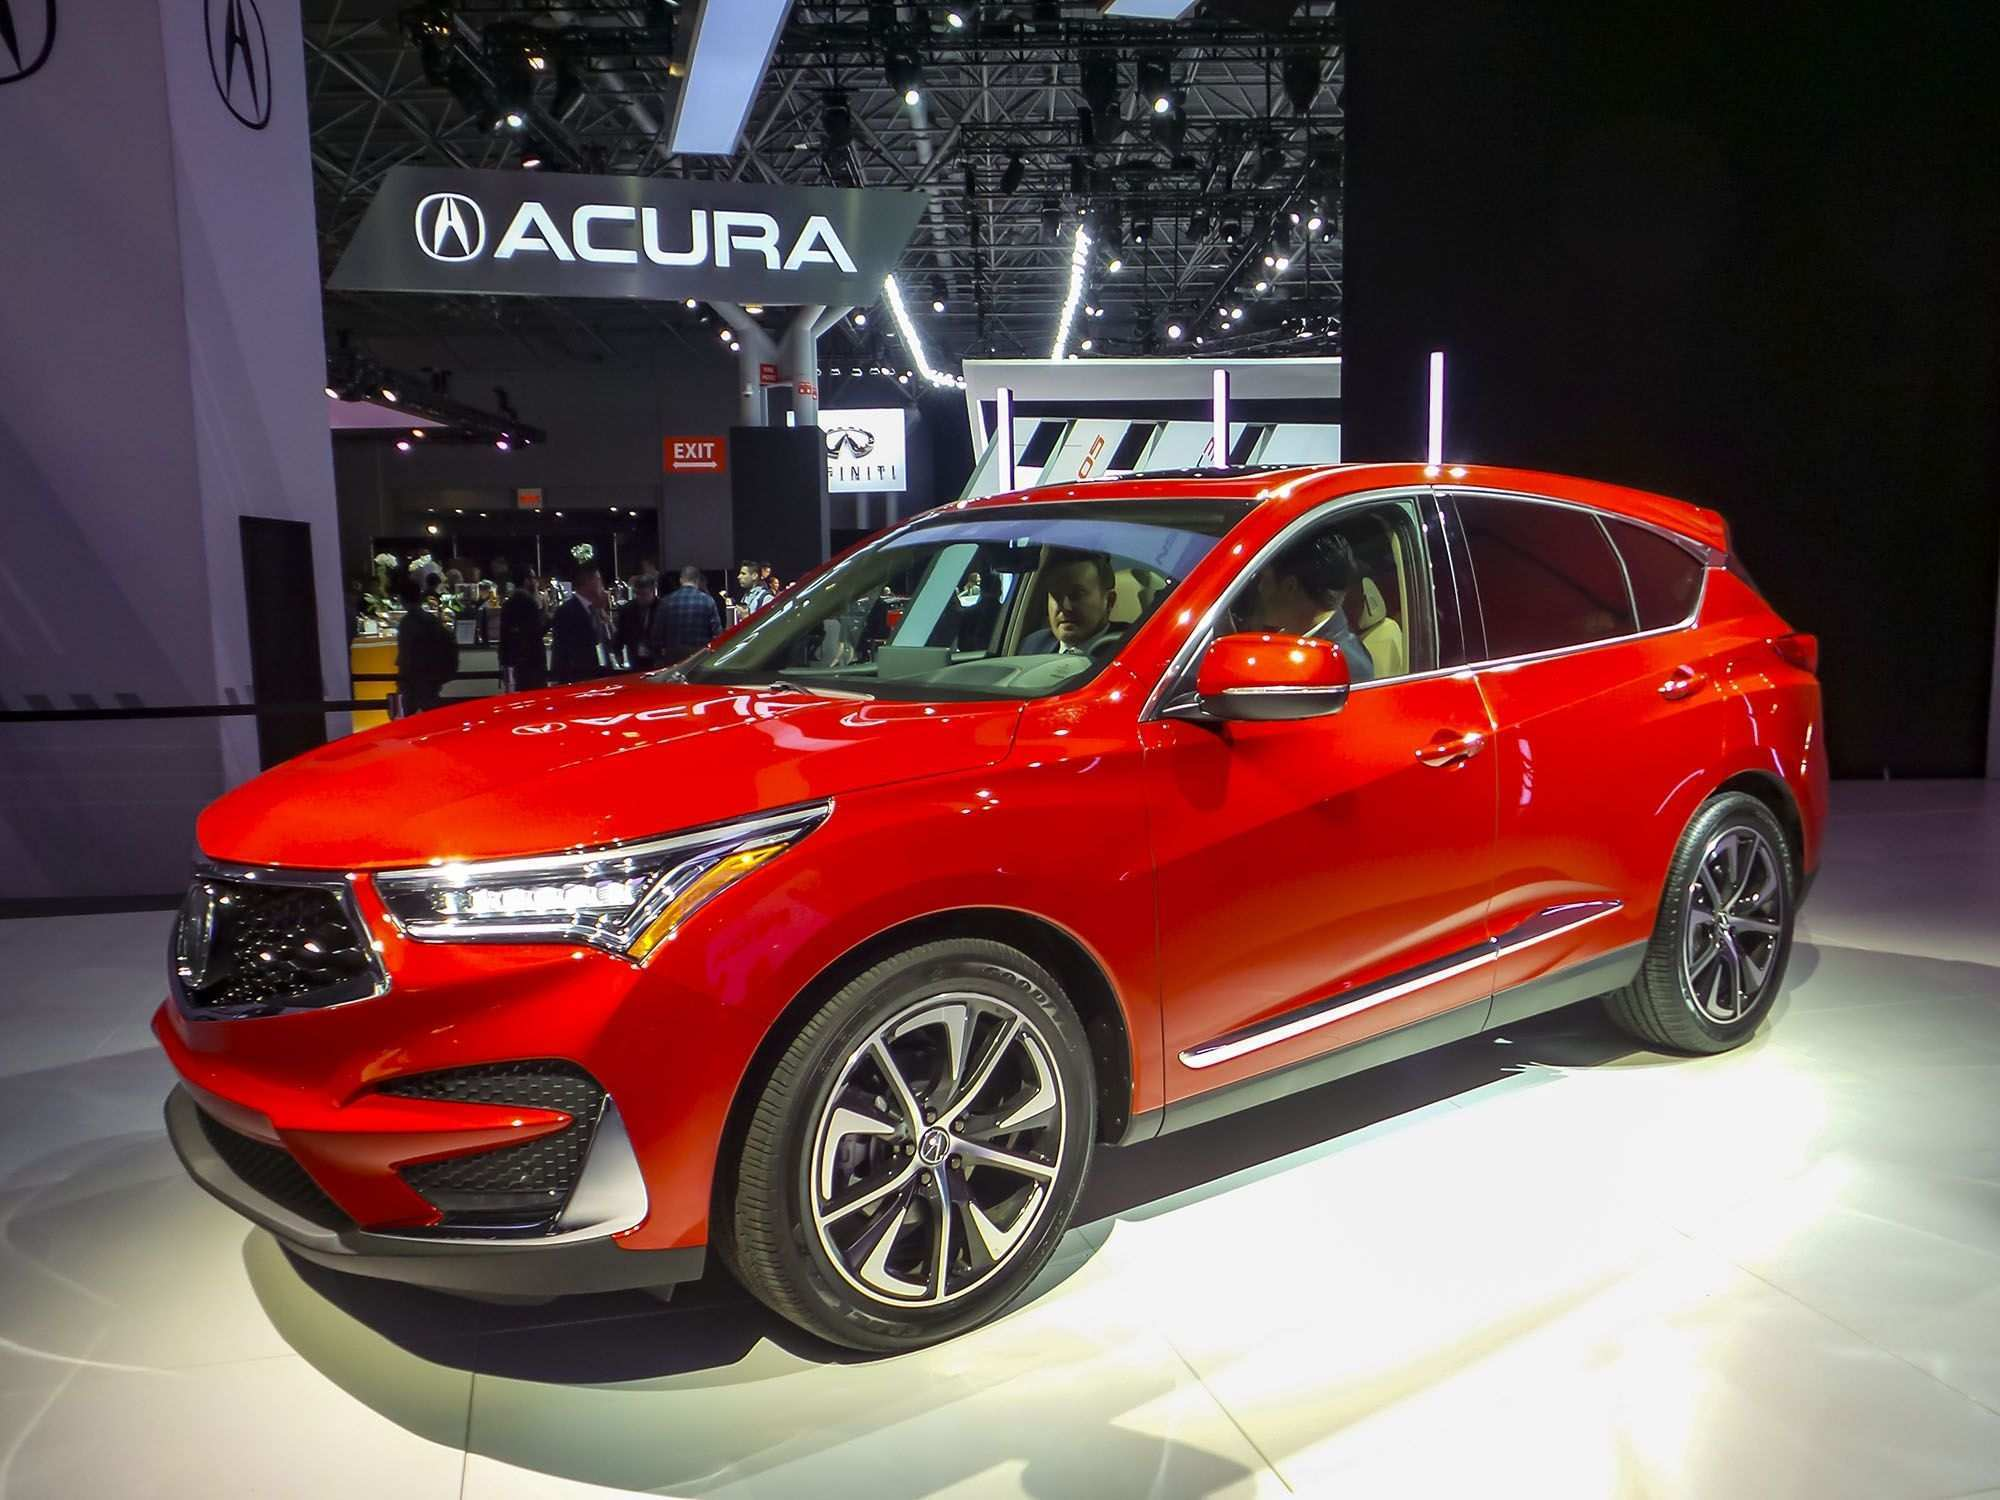 78 Concept of New Acura 2019 Zdx First Drive Price Performance And Review Price and Review for New Acura 2019 Zdx First Drive Price Performance And Review